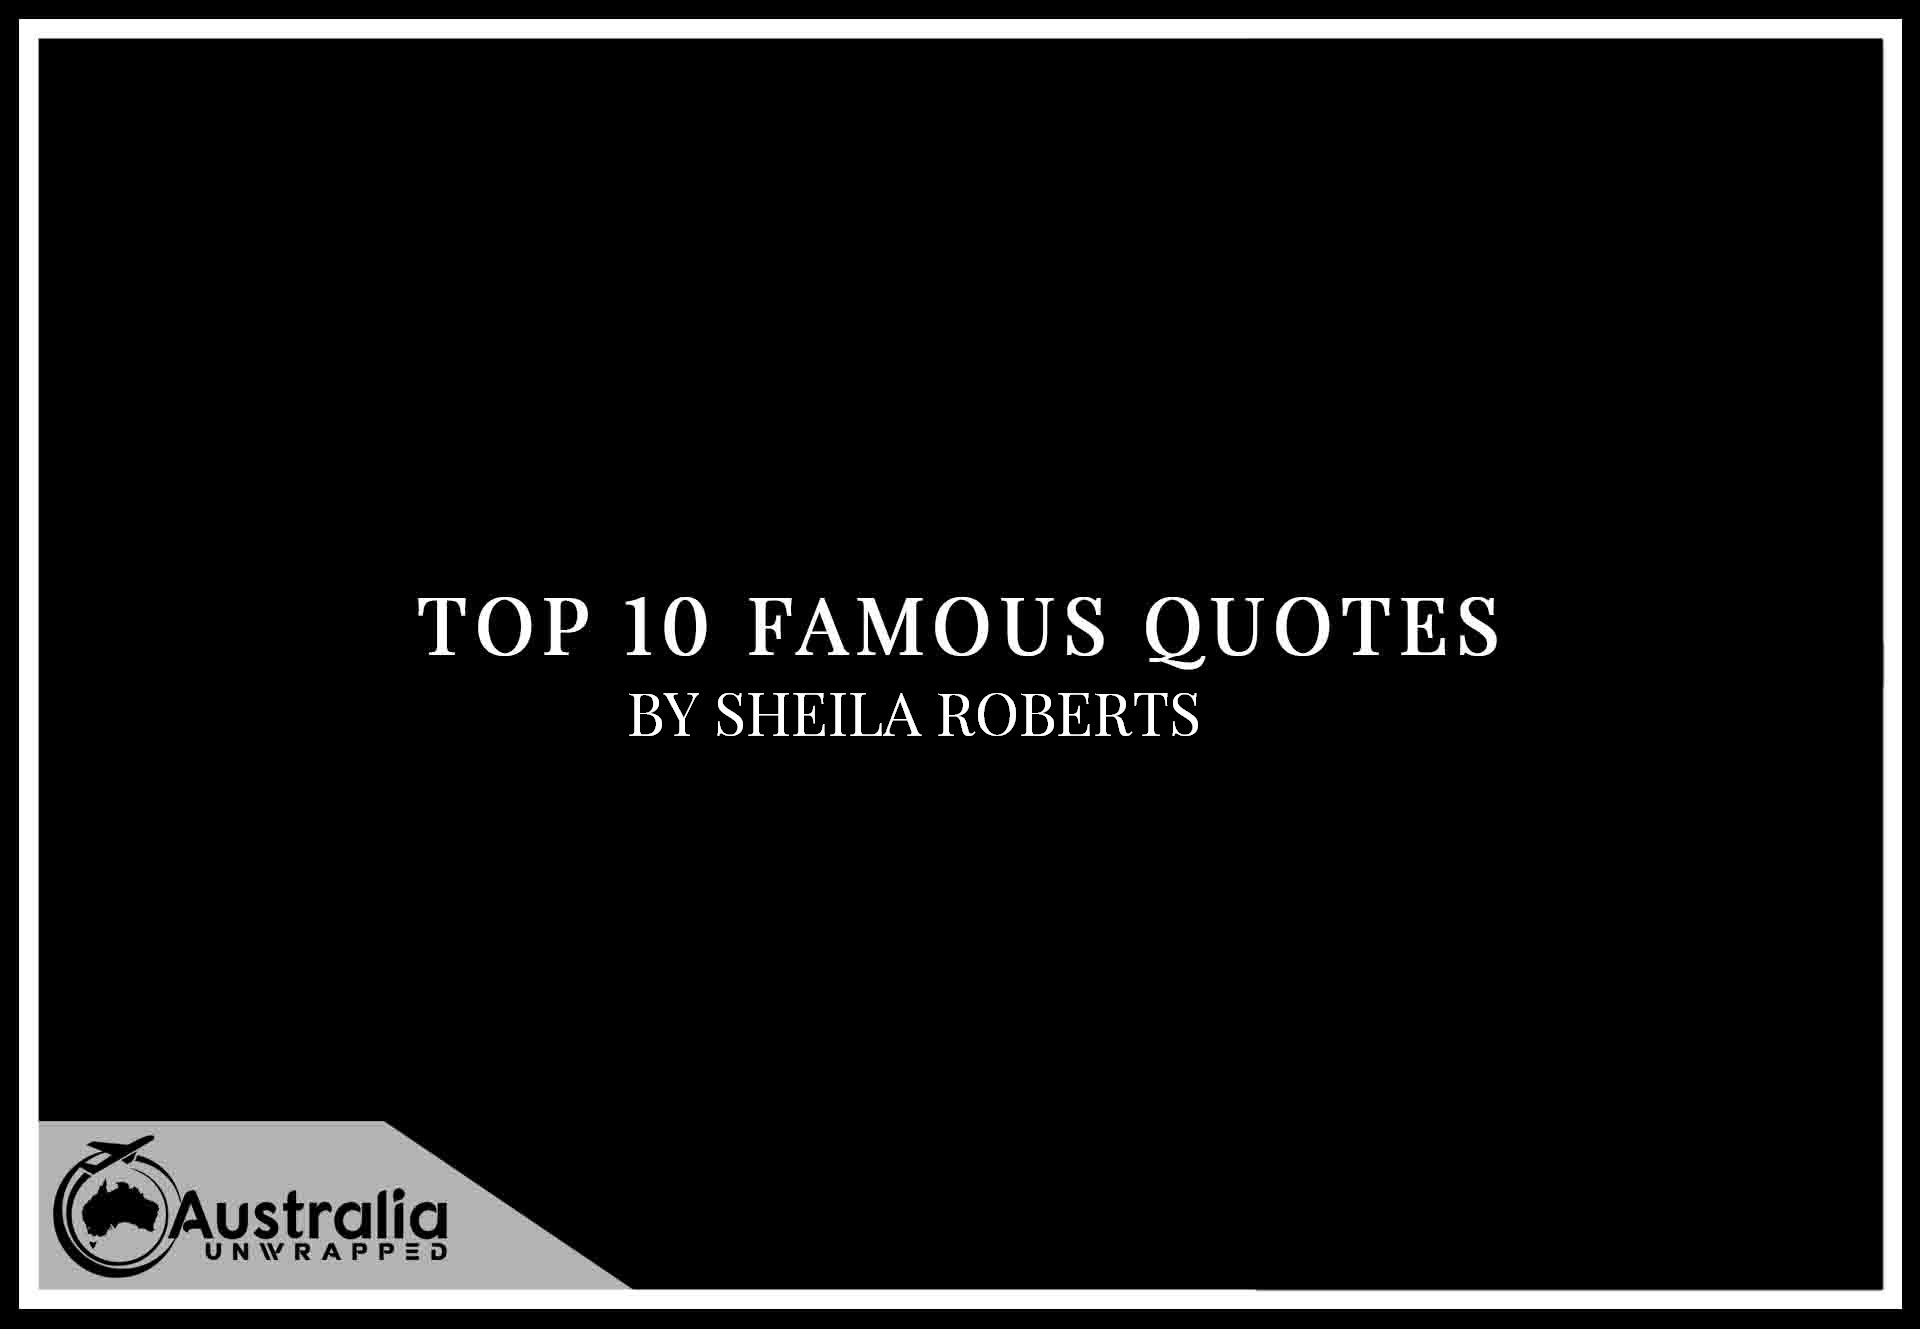 Top 10 Famous Quotes by Author Sheila Roberts